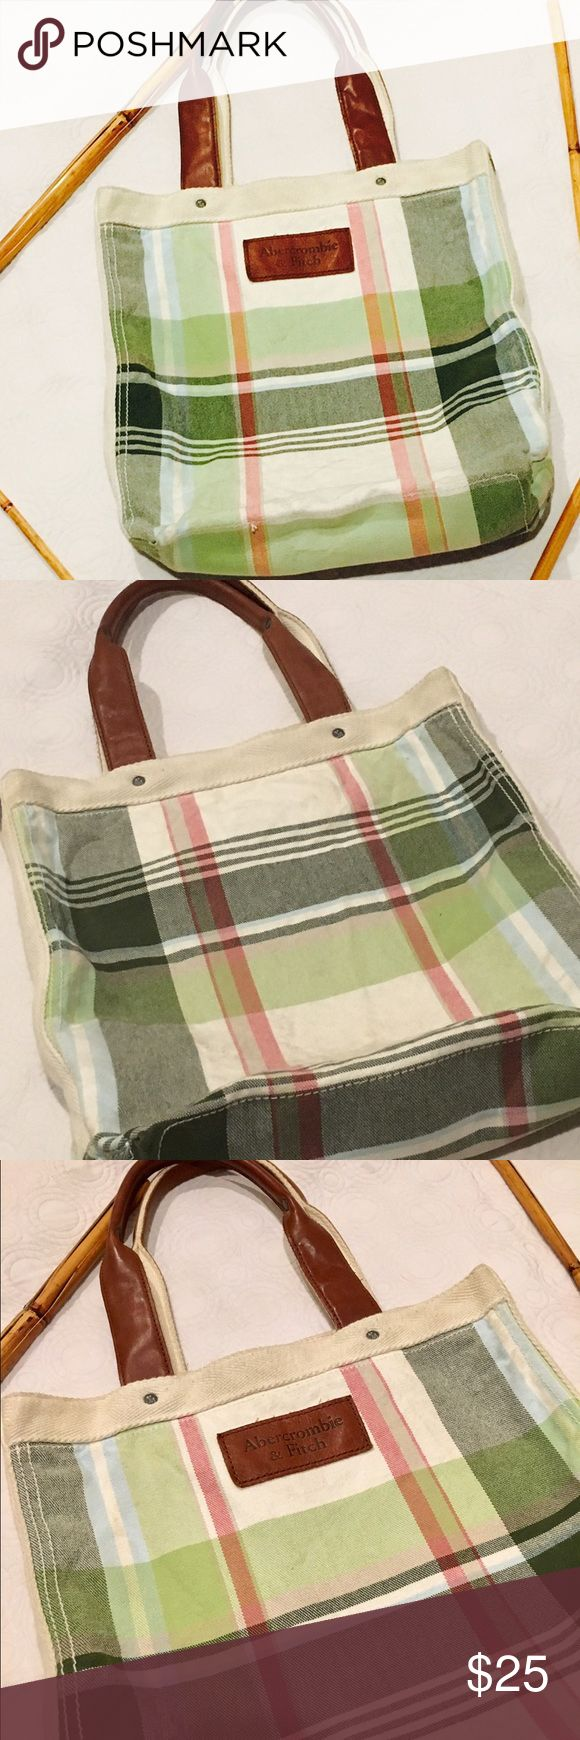 Abercrombie & Fitch Cotton Tote Bag Abercrombie & Fitch Tote Bag 💕💕Good Condition 💕💕 Abercrombie & Fitch Bags Totes